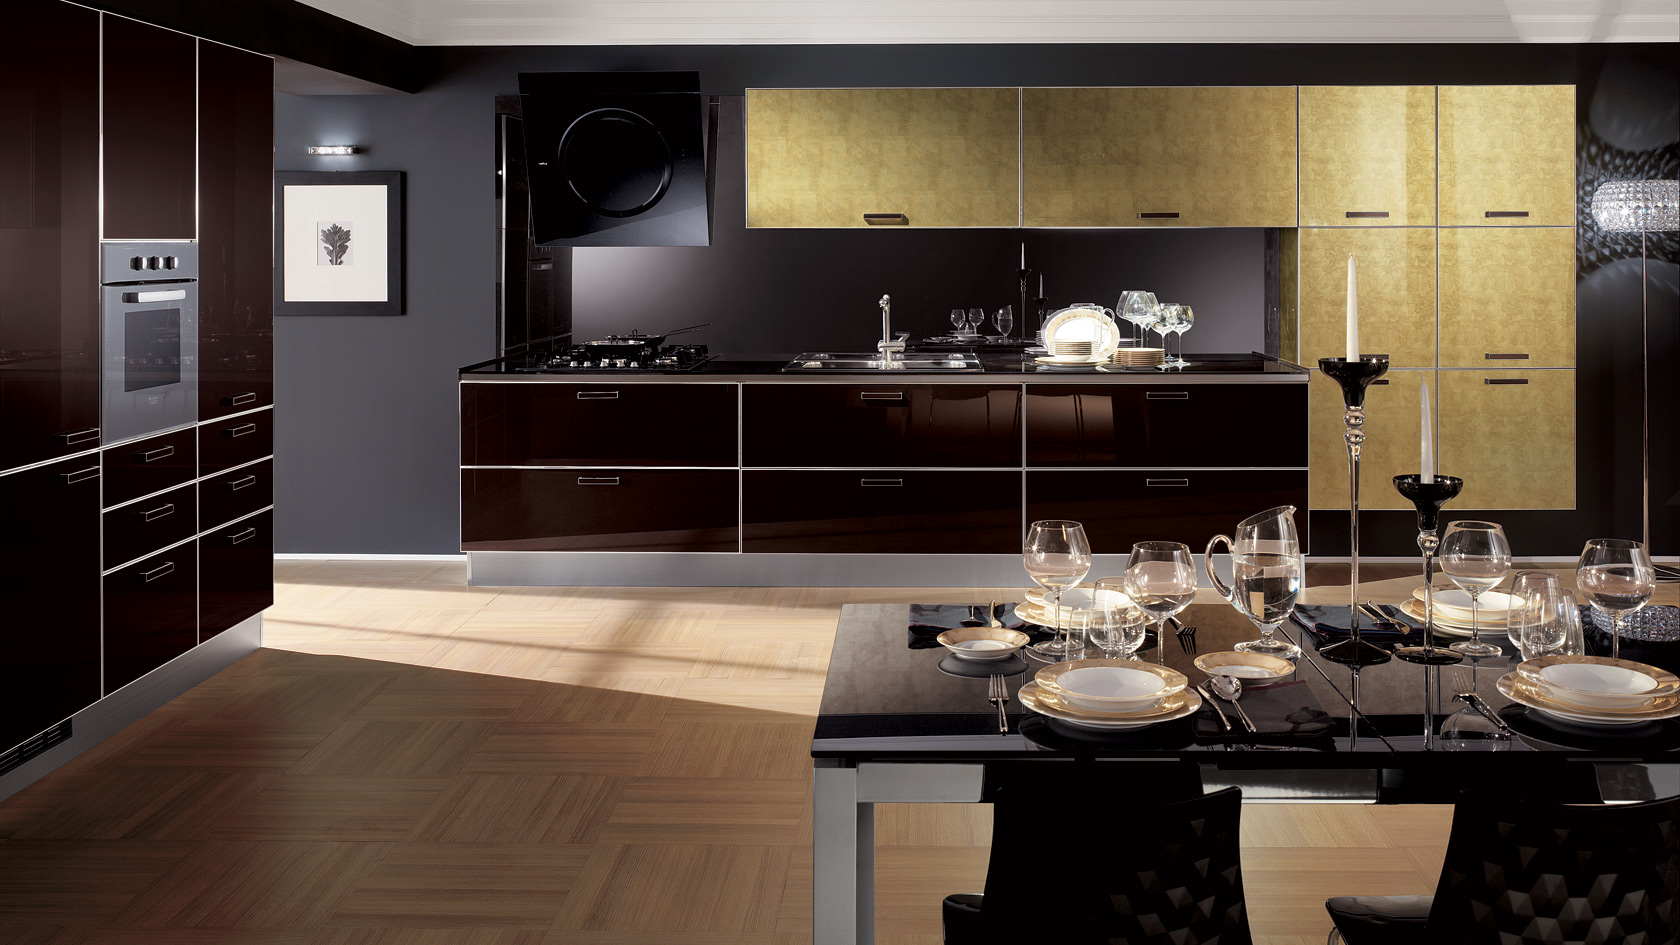 Awesome Cucina Scavolini Carol Pictures - bery.us - bery.us